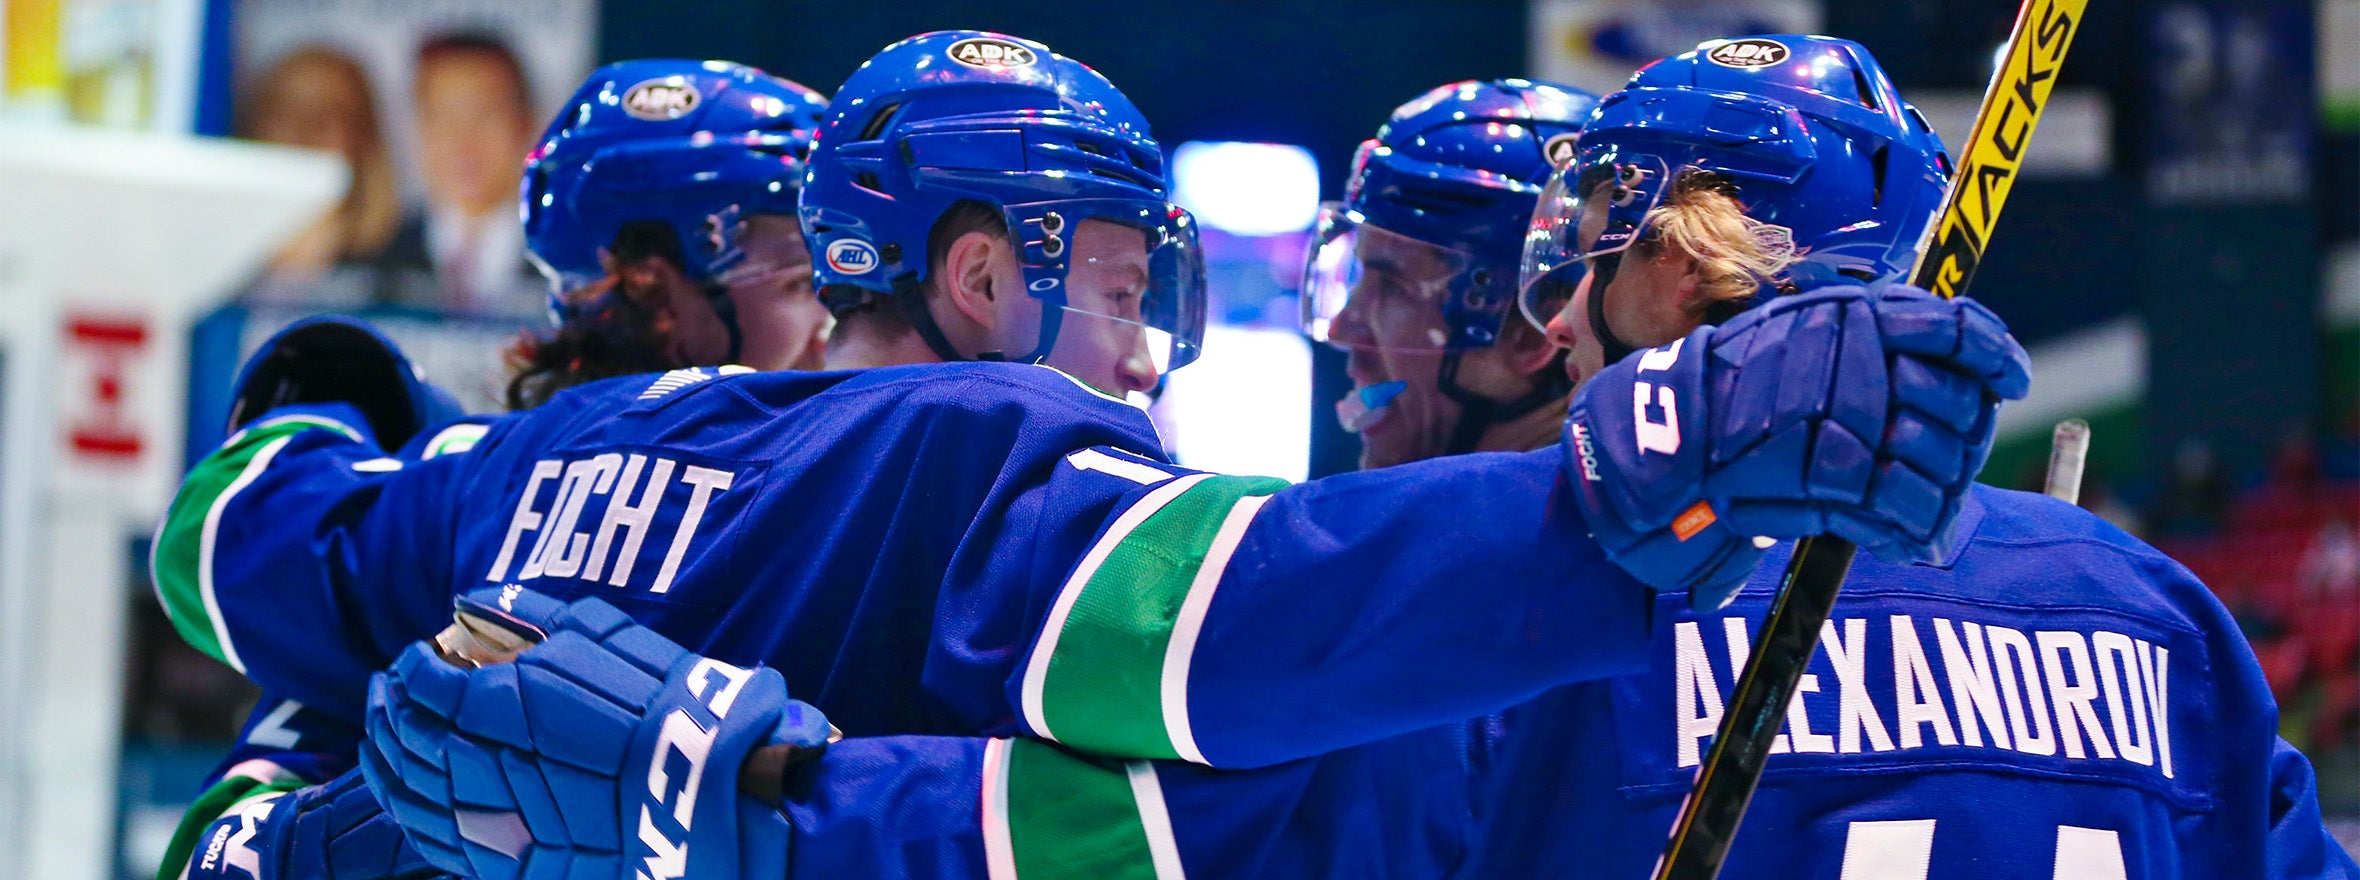 COMETS DOMINATE IN FRONT OF DIPIETRO, WIN 7-1